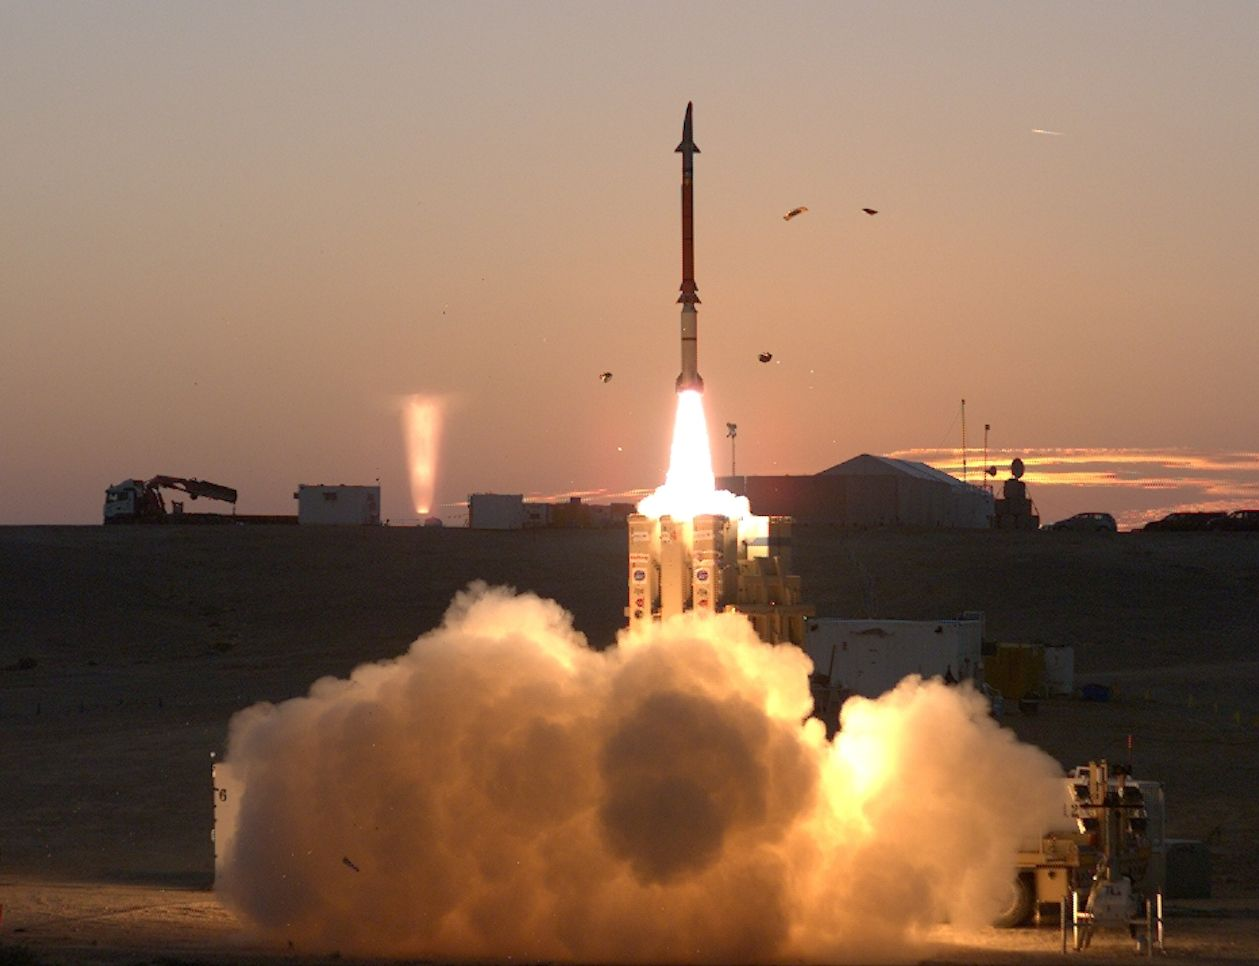 David's Sling Missile Defense System to Become Operational in Early April